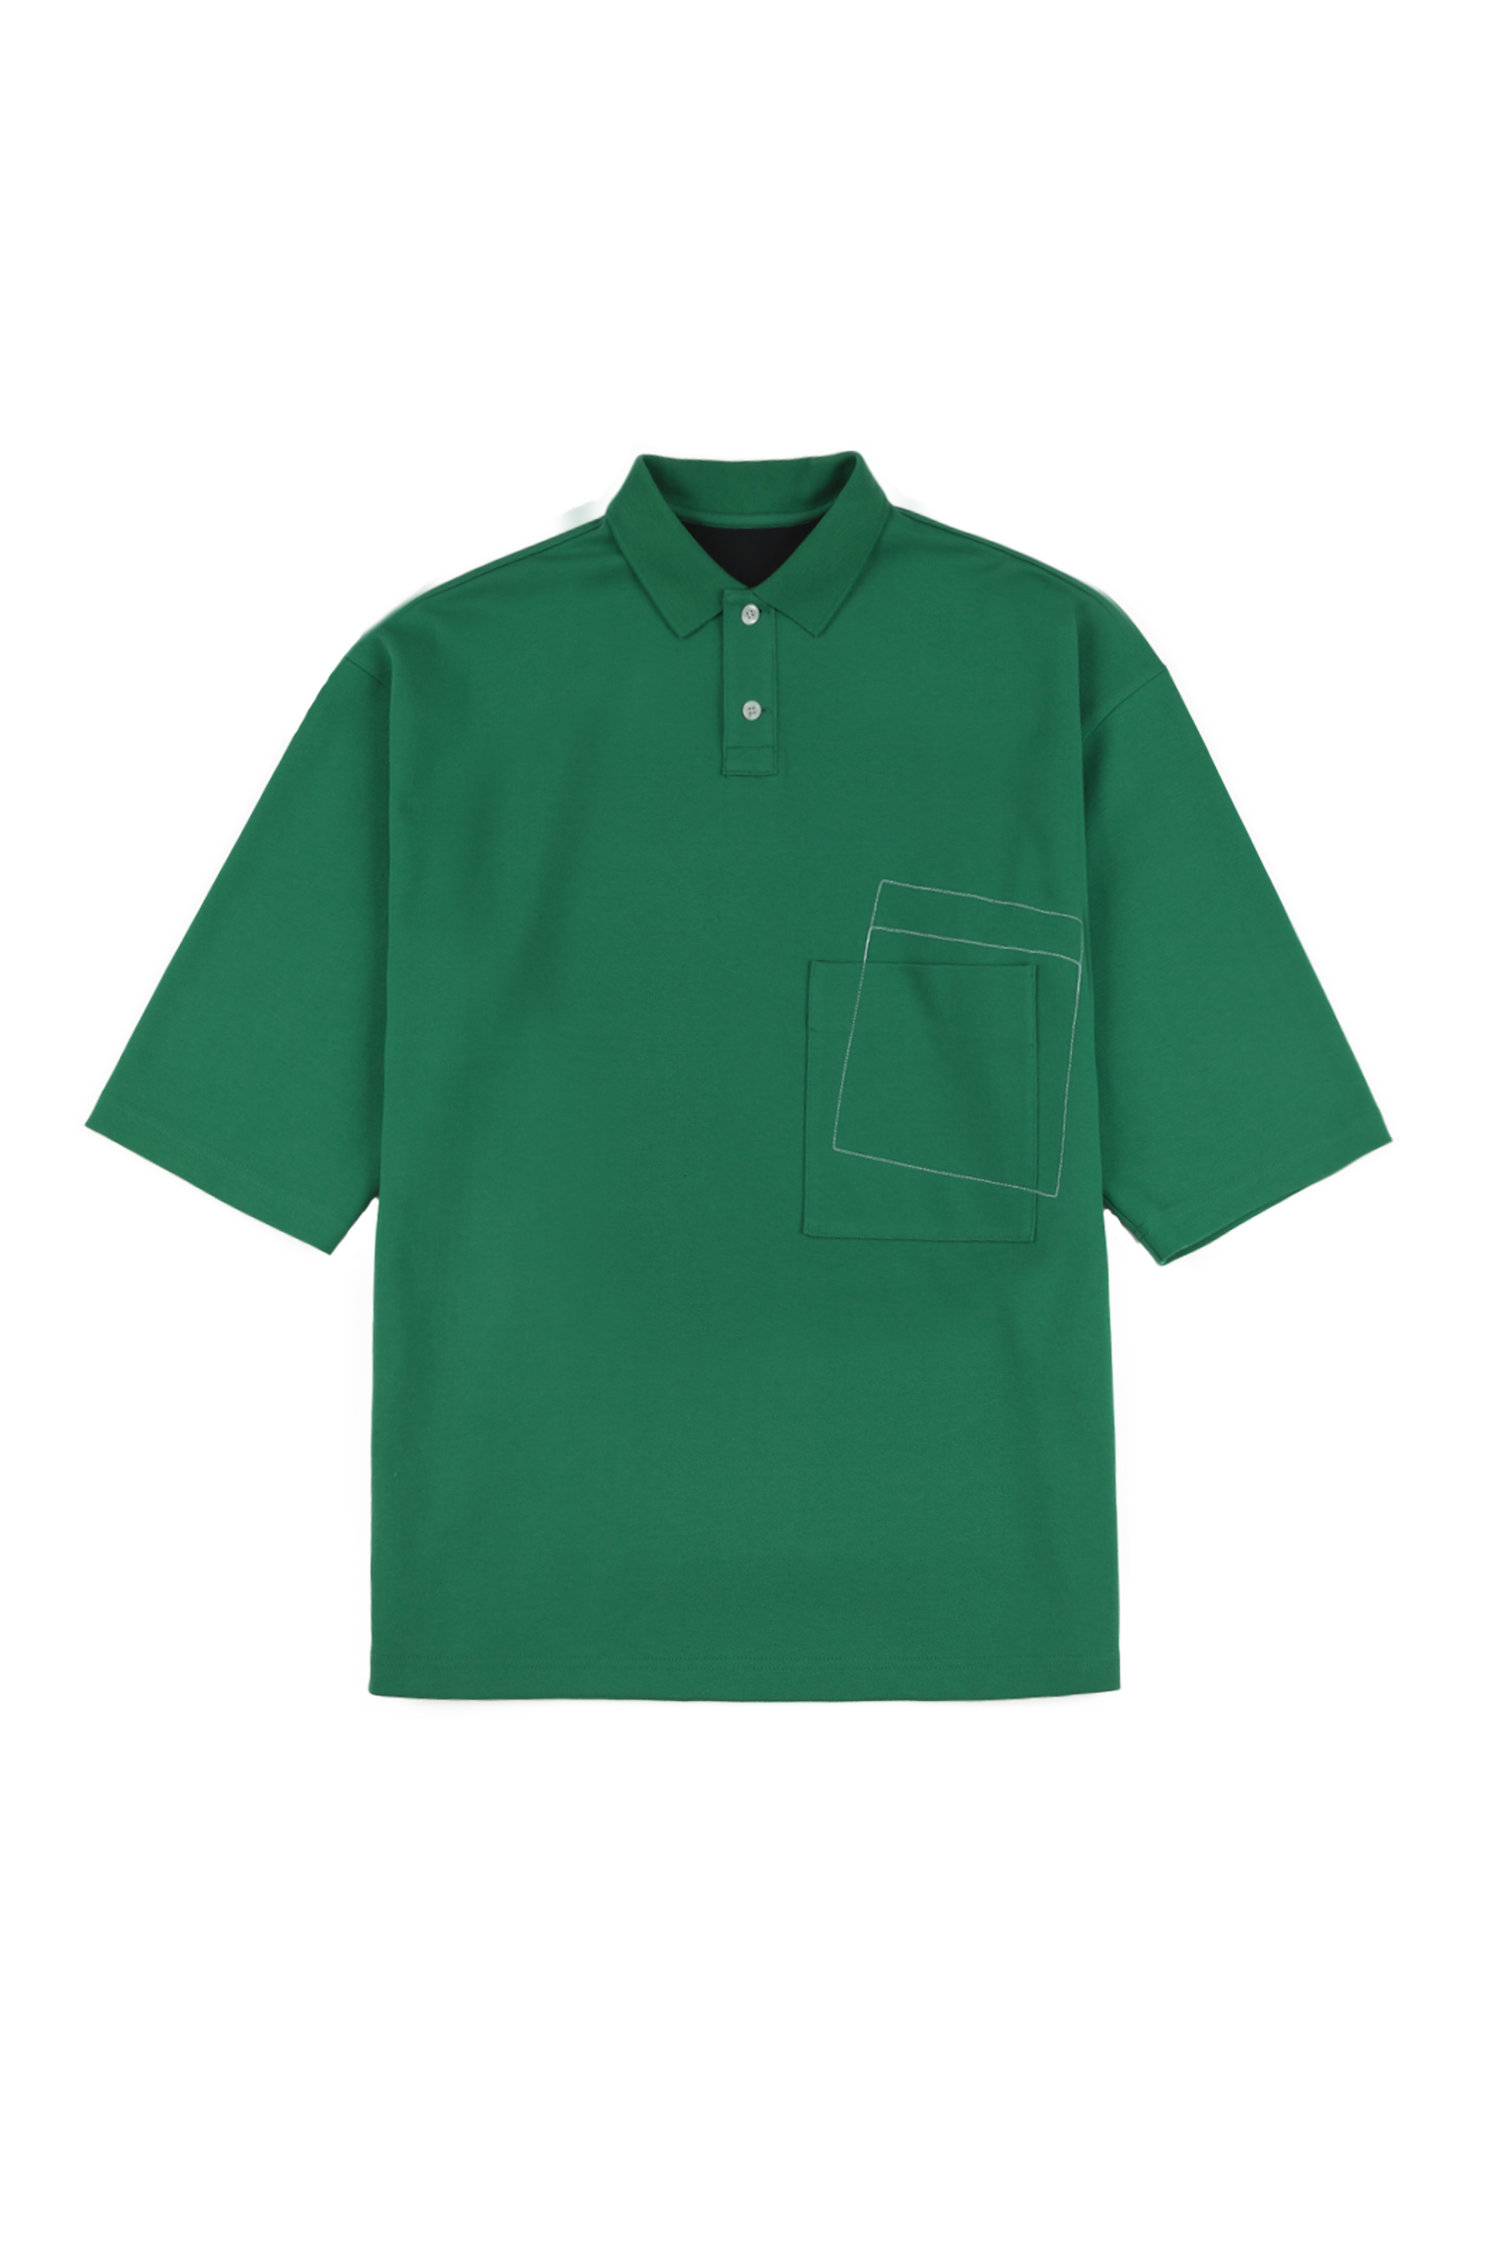 Ader Error Oversized 100 Free Polo Shirt Green Fig Collective